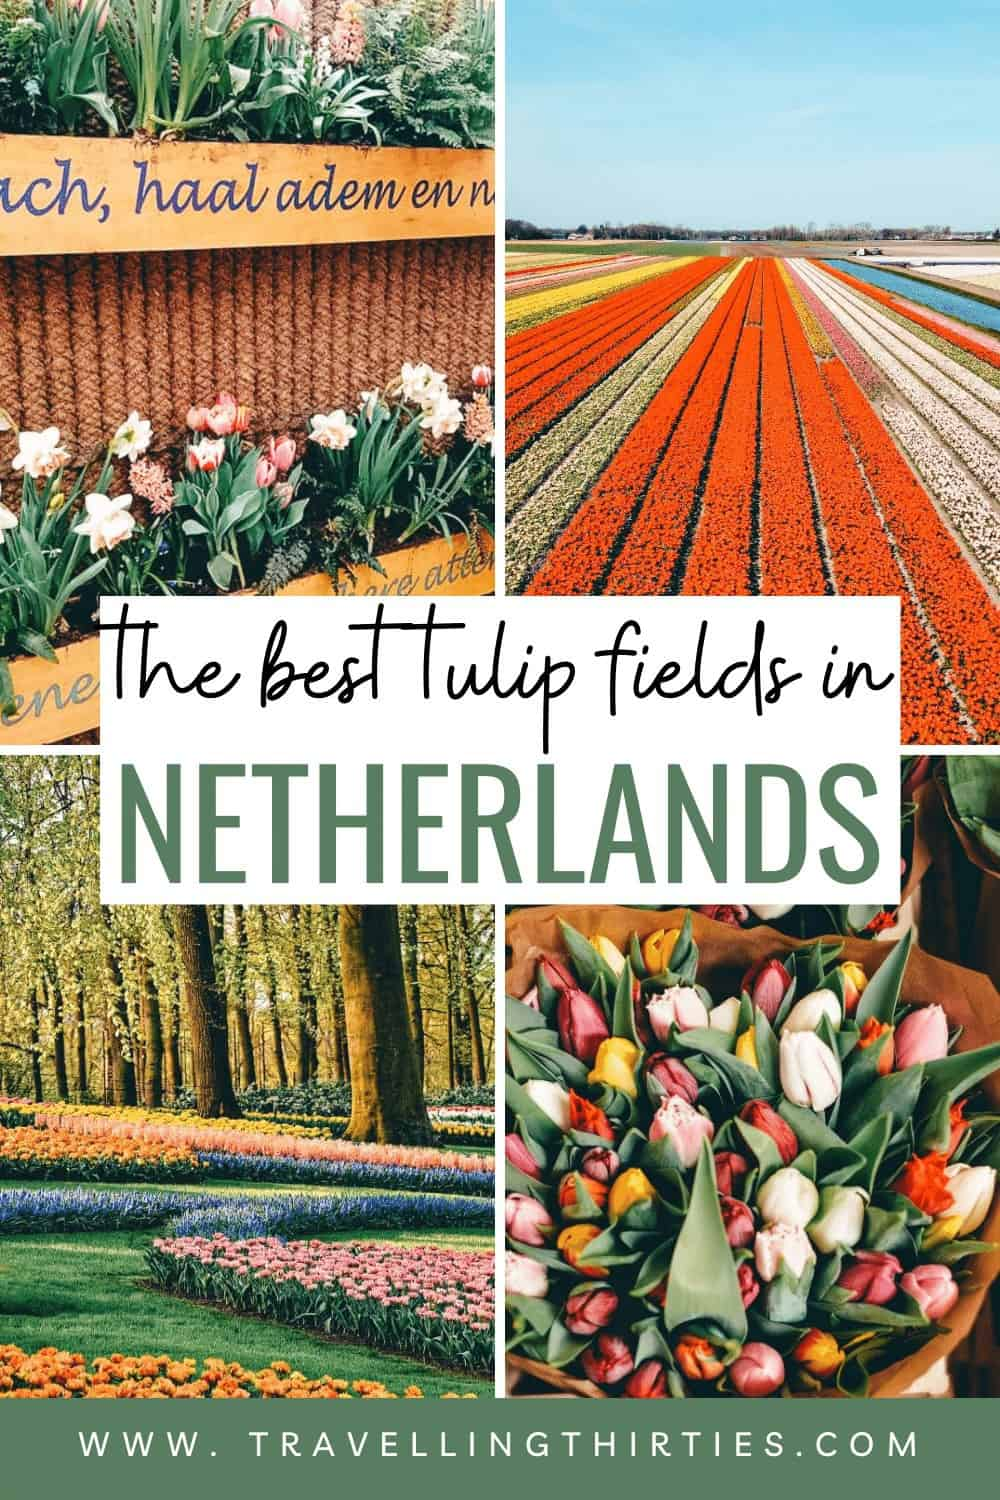 Pinterest Graphic for the tulip fields in the Netherlands